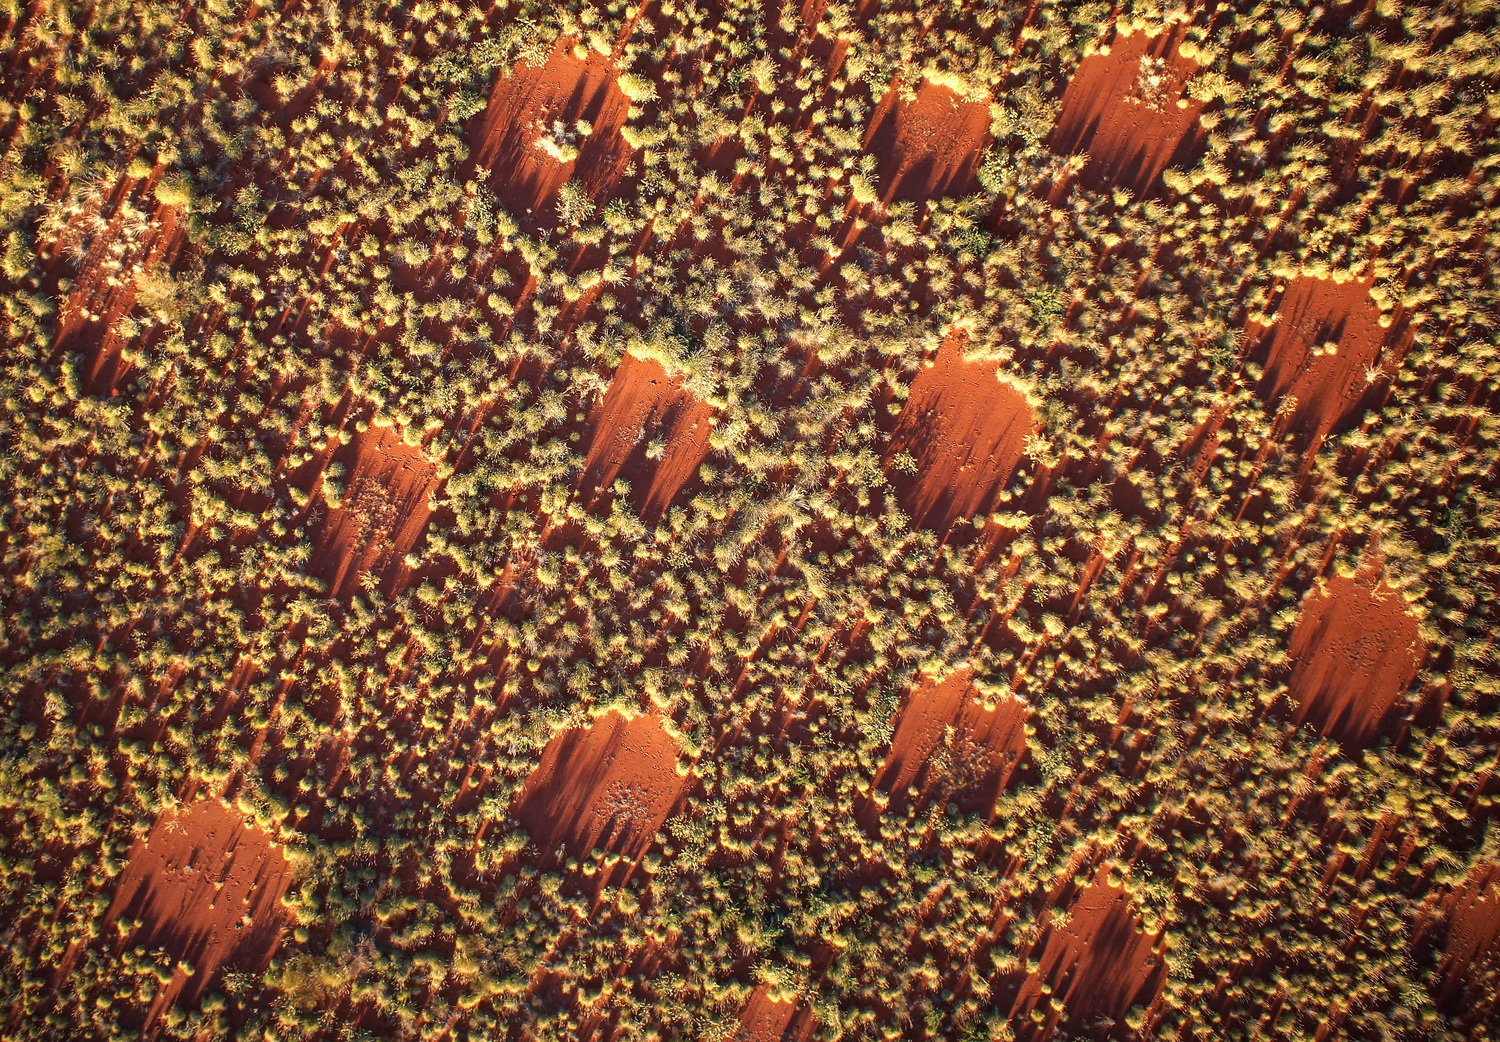 Drone image of the Australian fairy circles, taken at a flying altitude of 40 m above ground. The gaps have average diameters of 4 m and the spatially periodic pattern results from approximately equal distances between the centers of nearest-neighbouring gaps. This study plot burnt in 2014 and the recovering spinifex grasses were two years and eight months old.